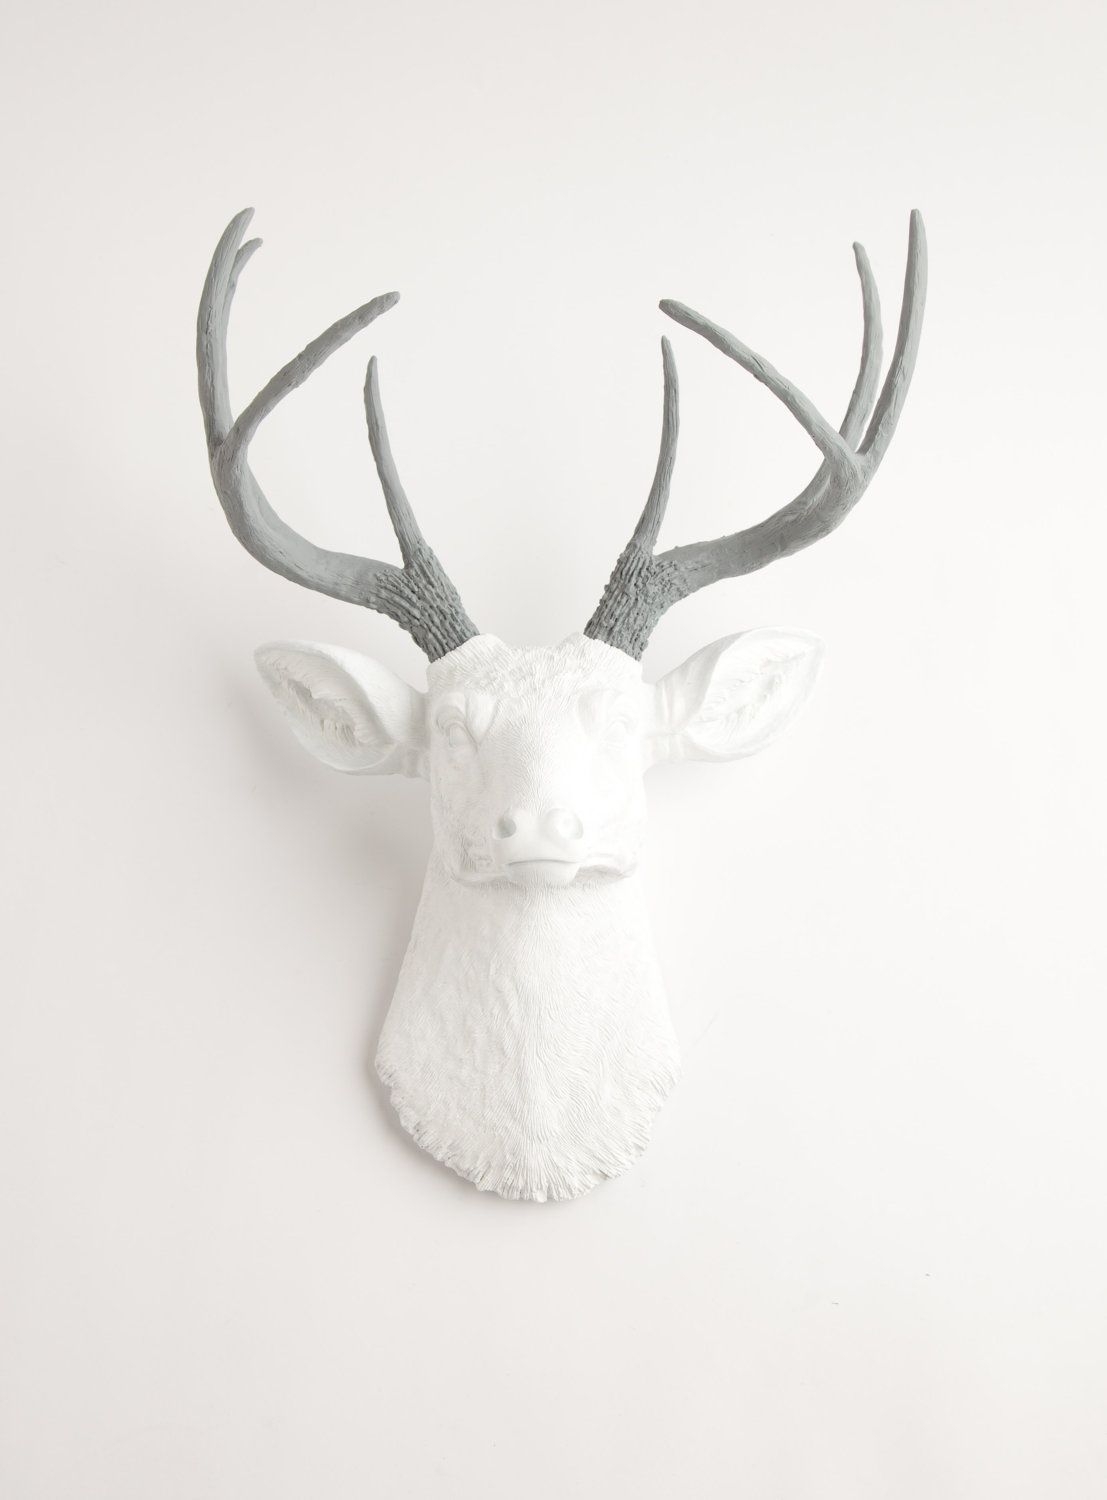 Faux Resin Deer Head With Contrasting Antlers With Images White Faux Taxidermy Faux Deer Head Deer Head Decor